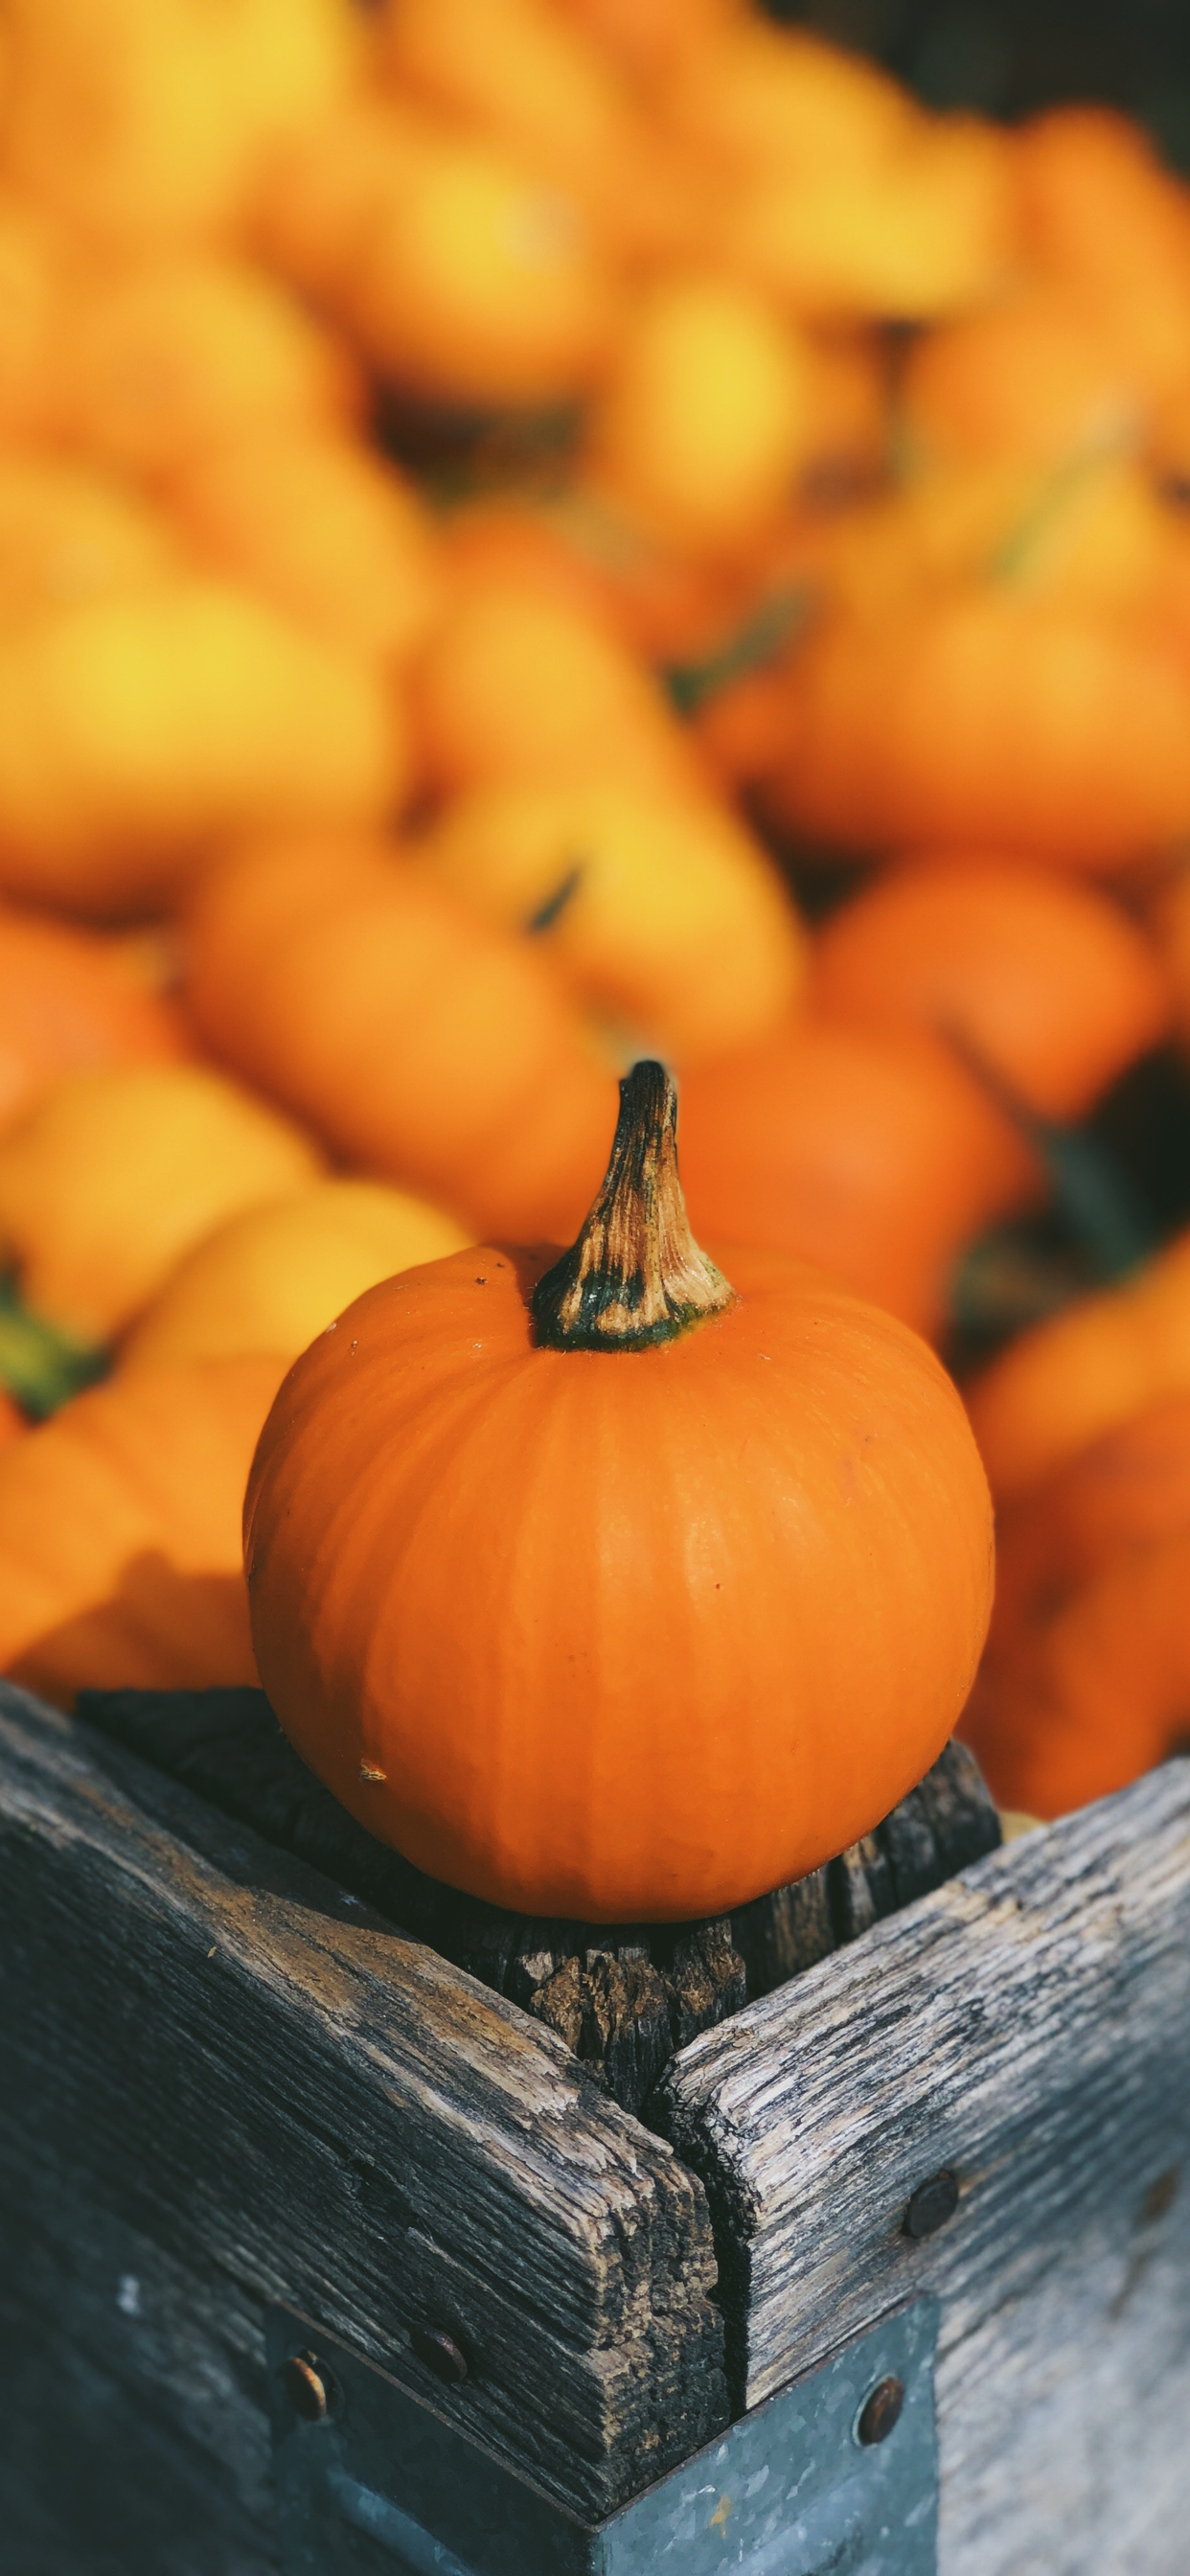 One pumpkin standing out from others